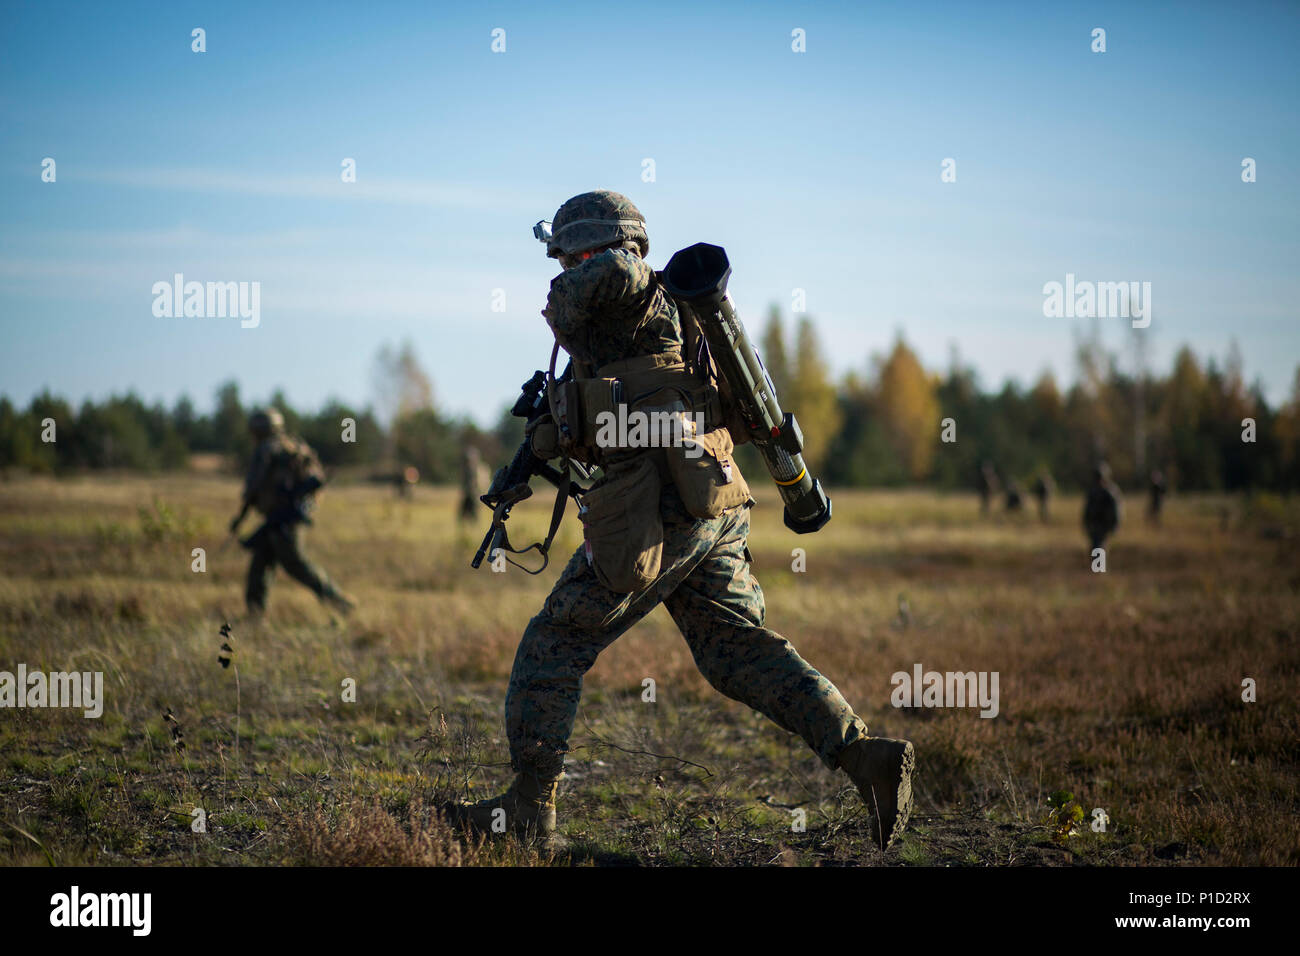 Defense In Depth High Resolution Stock Photography And Images Alamy